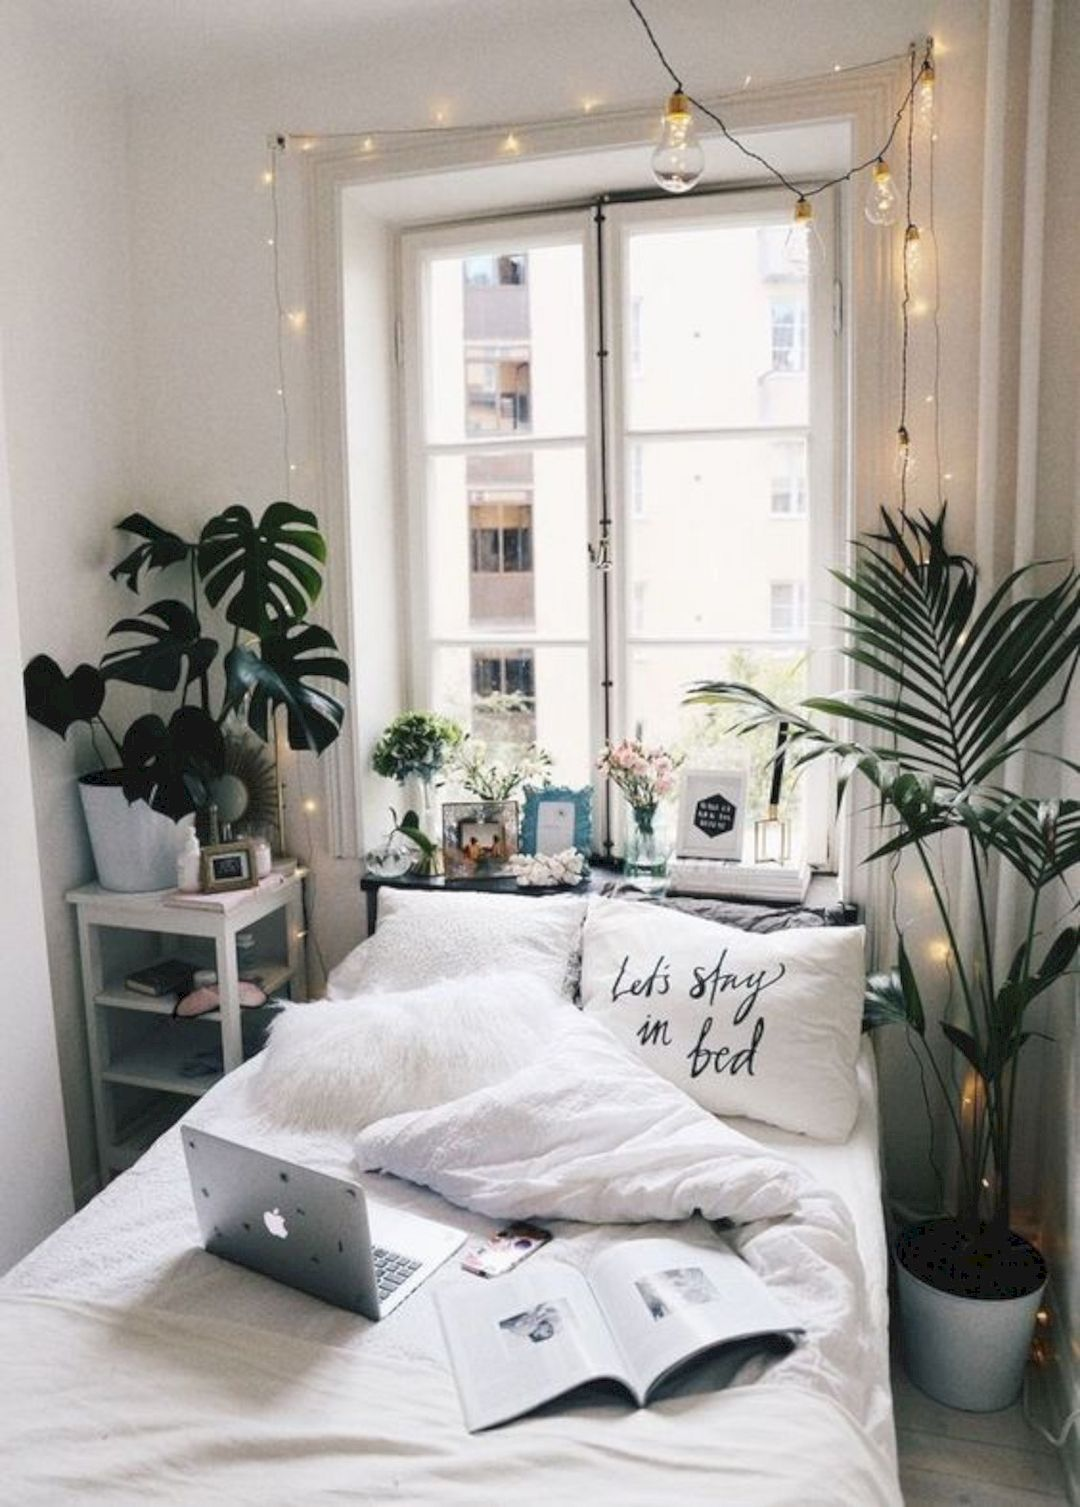 See our 20 favorite small bedrooms. 15 Fascinating Bedrooms With Plants That Look Like A Jungle